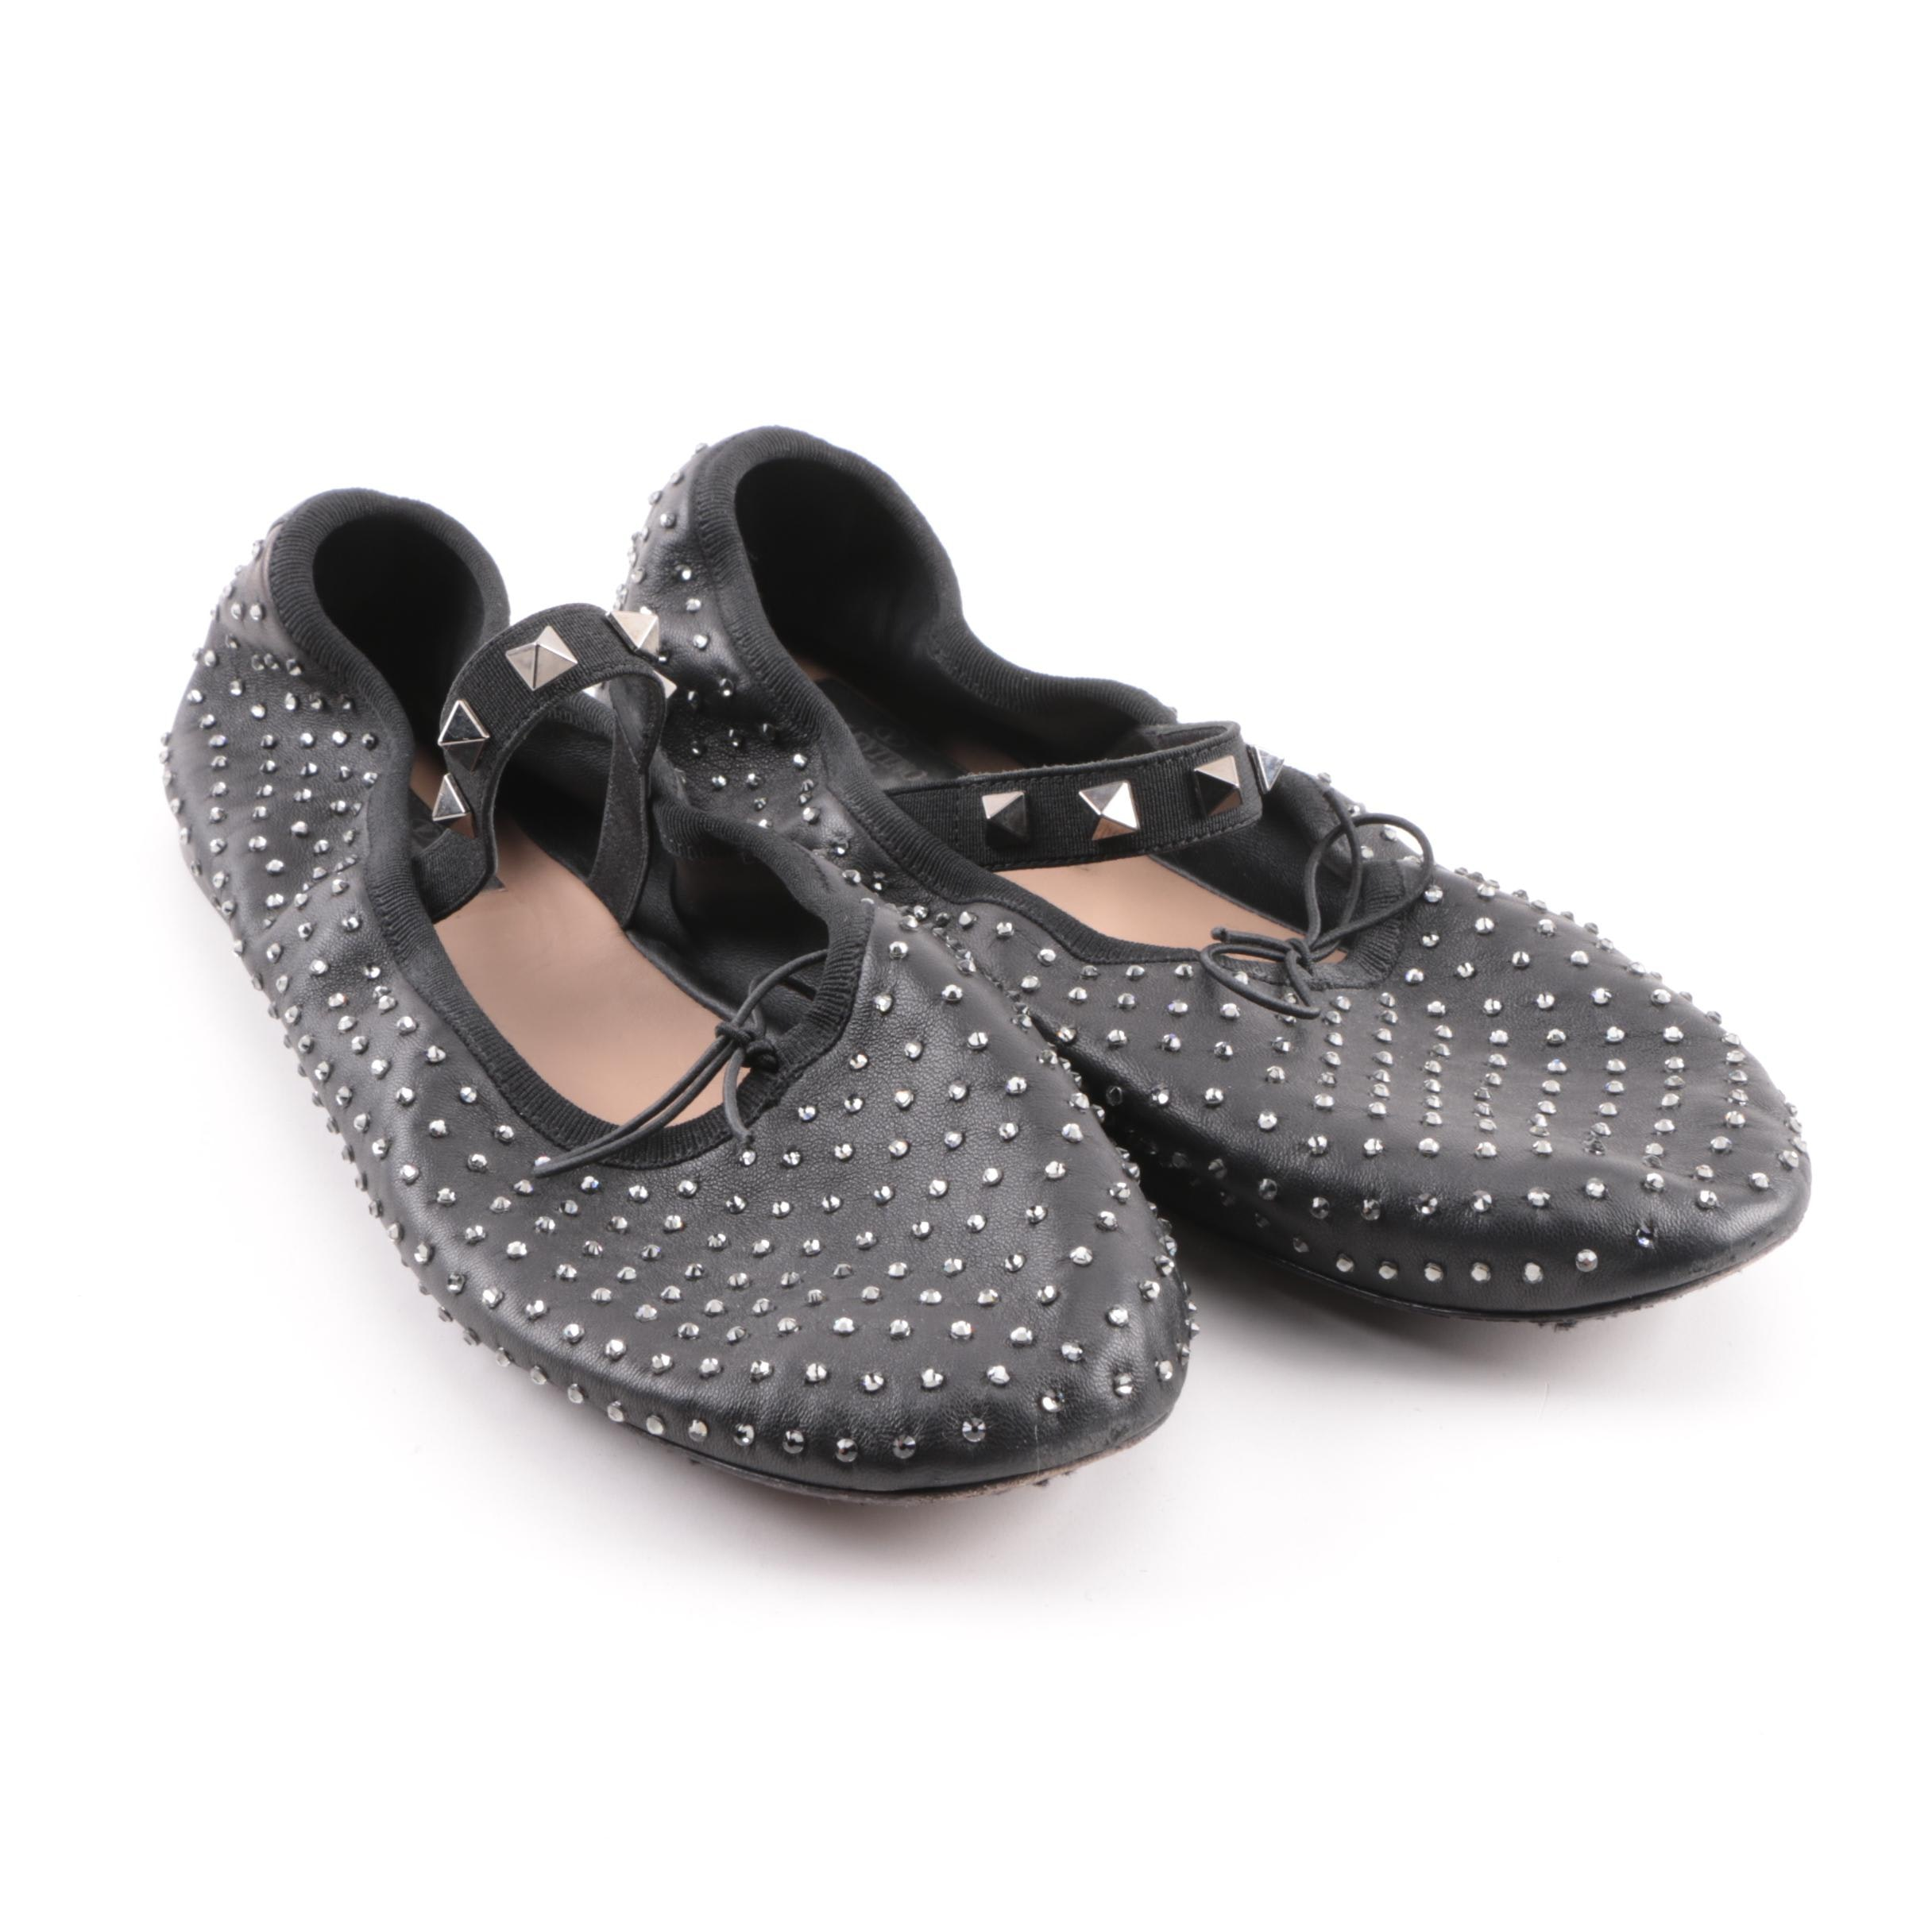 Women's Valentino Black Leather Studded Ballerina Style Flats